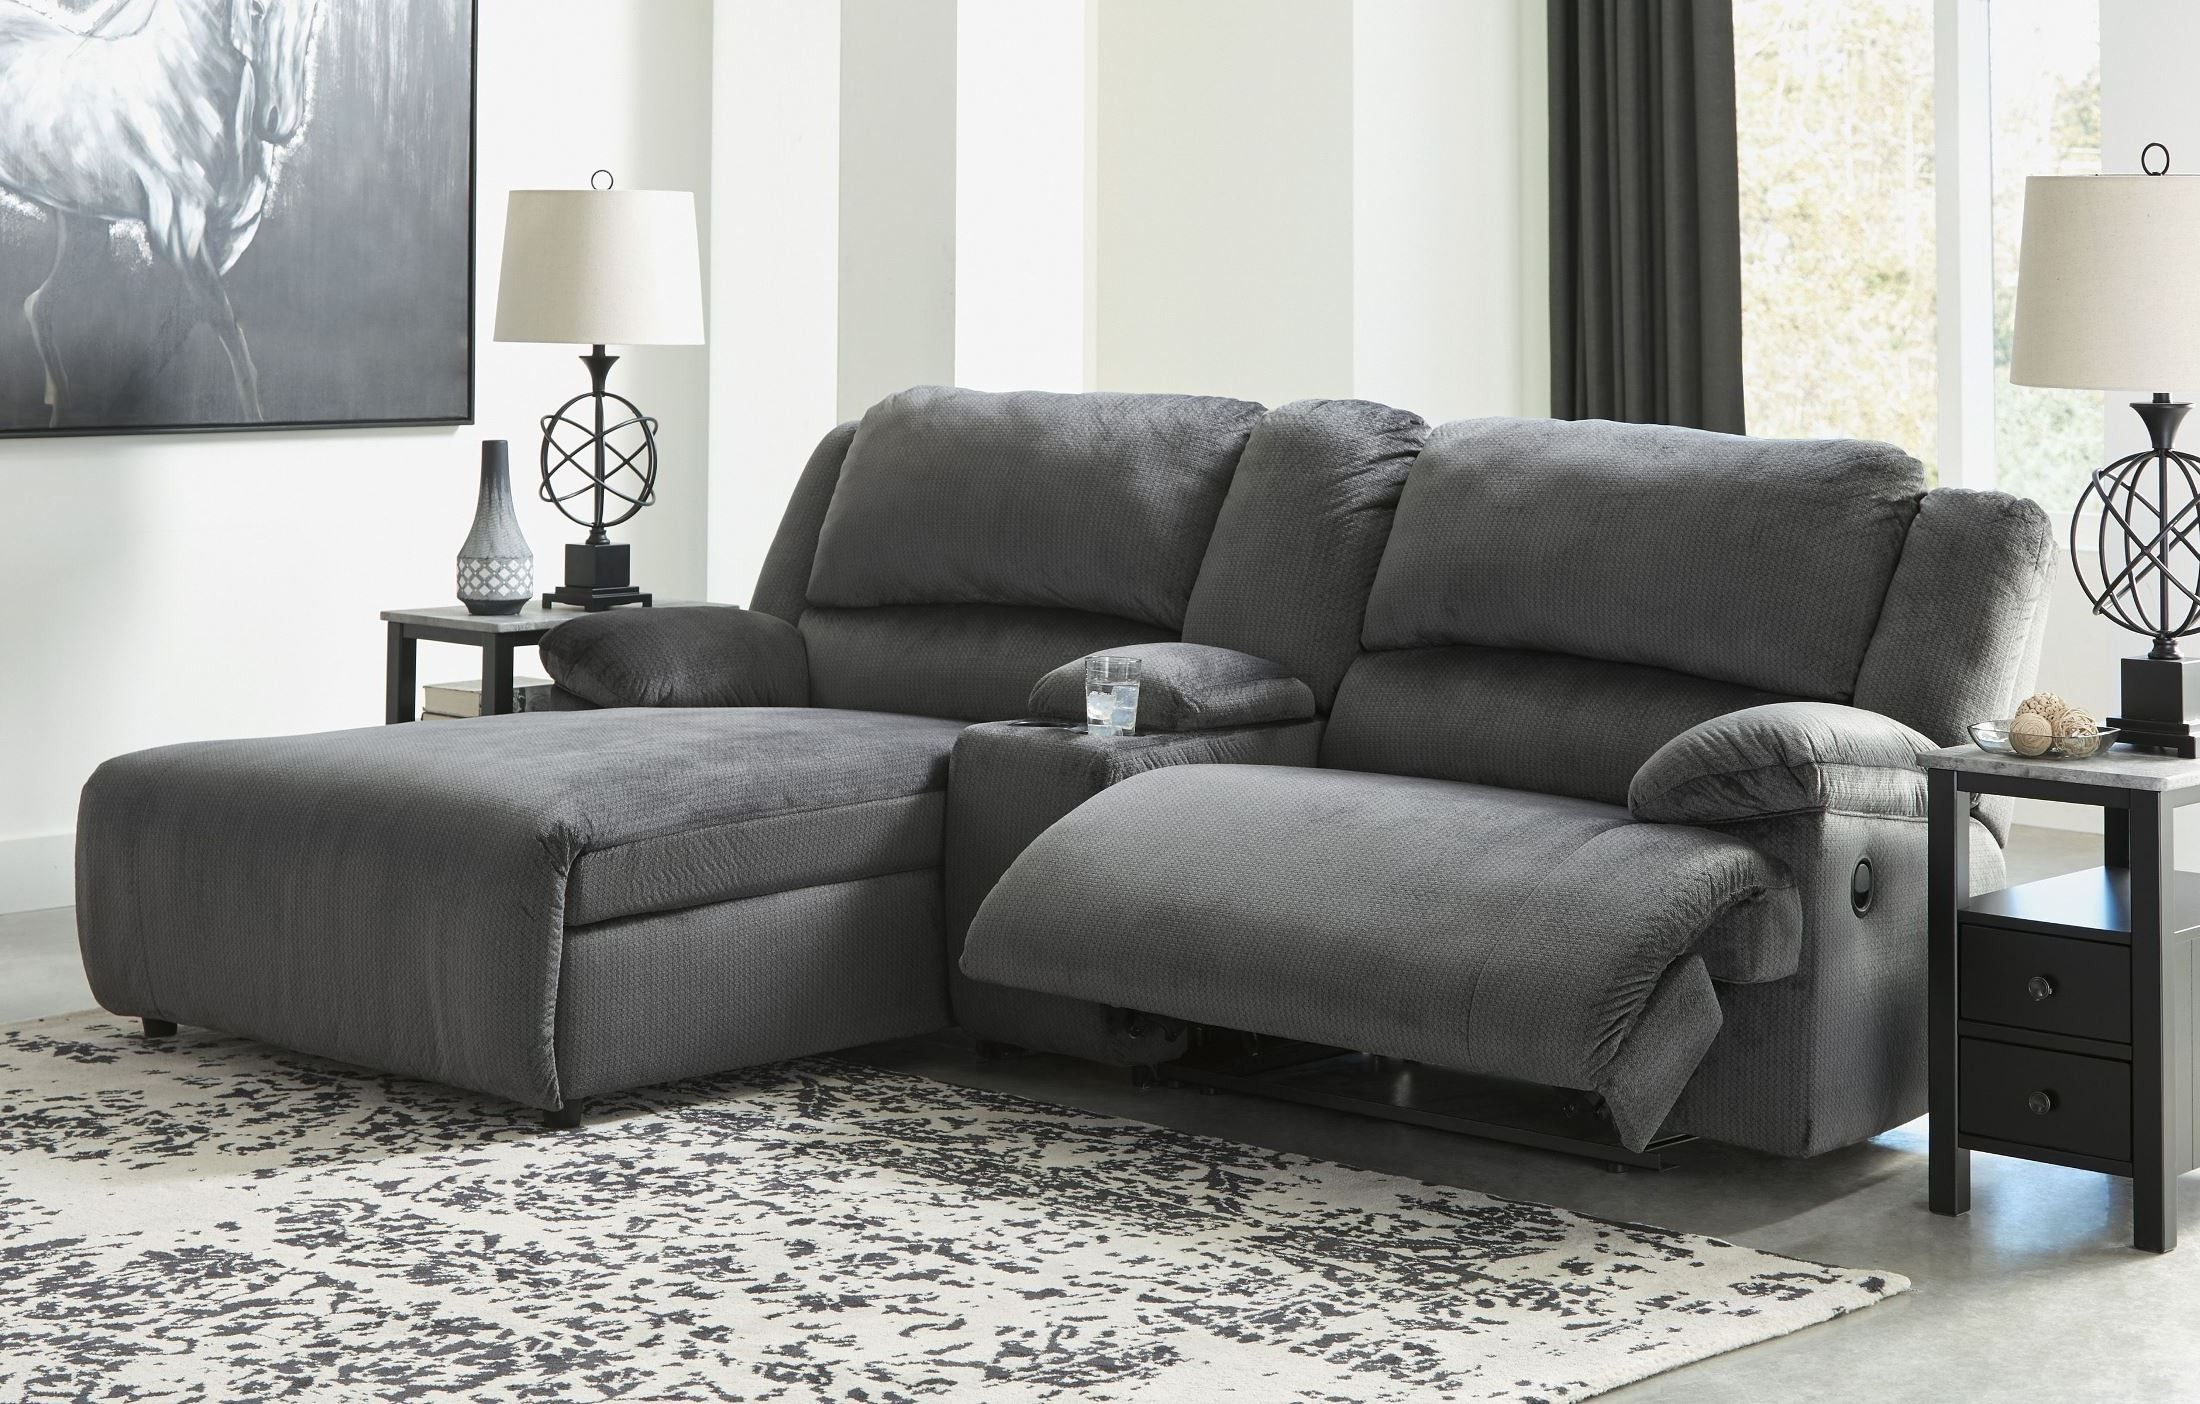 Clonmel Charcoal Small Console Reclining Laf Sectional Reclining Sectional With Chaise Small Sectional Sofa Cheap Decor